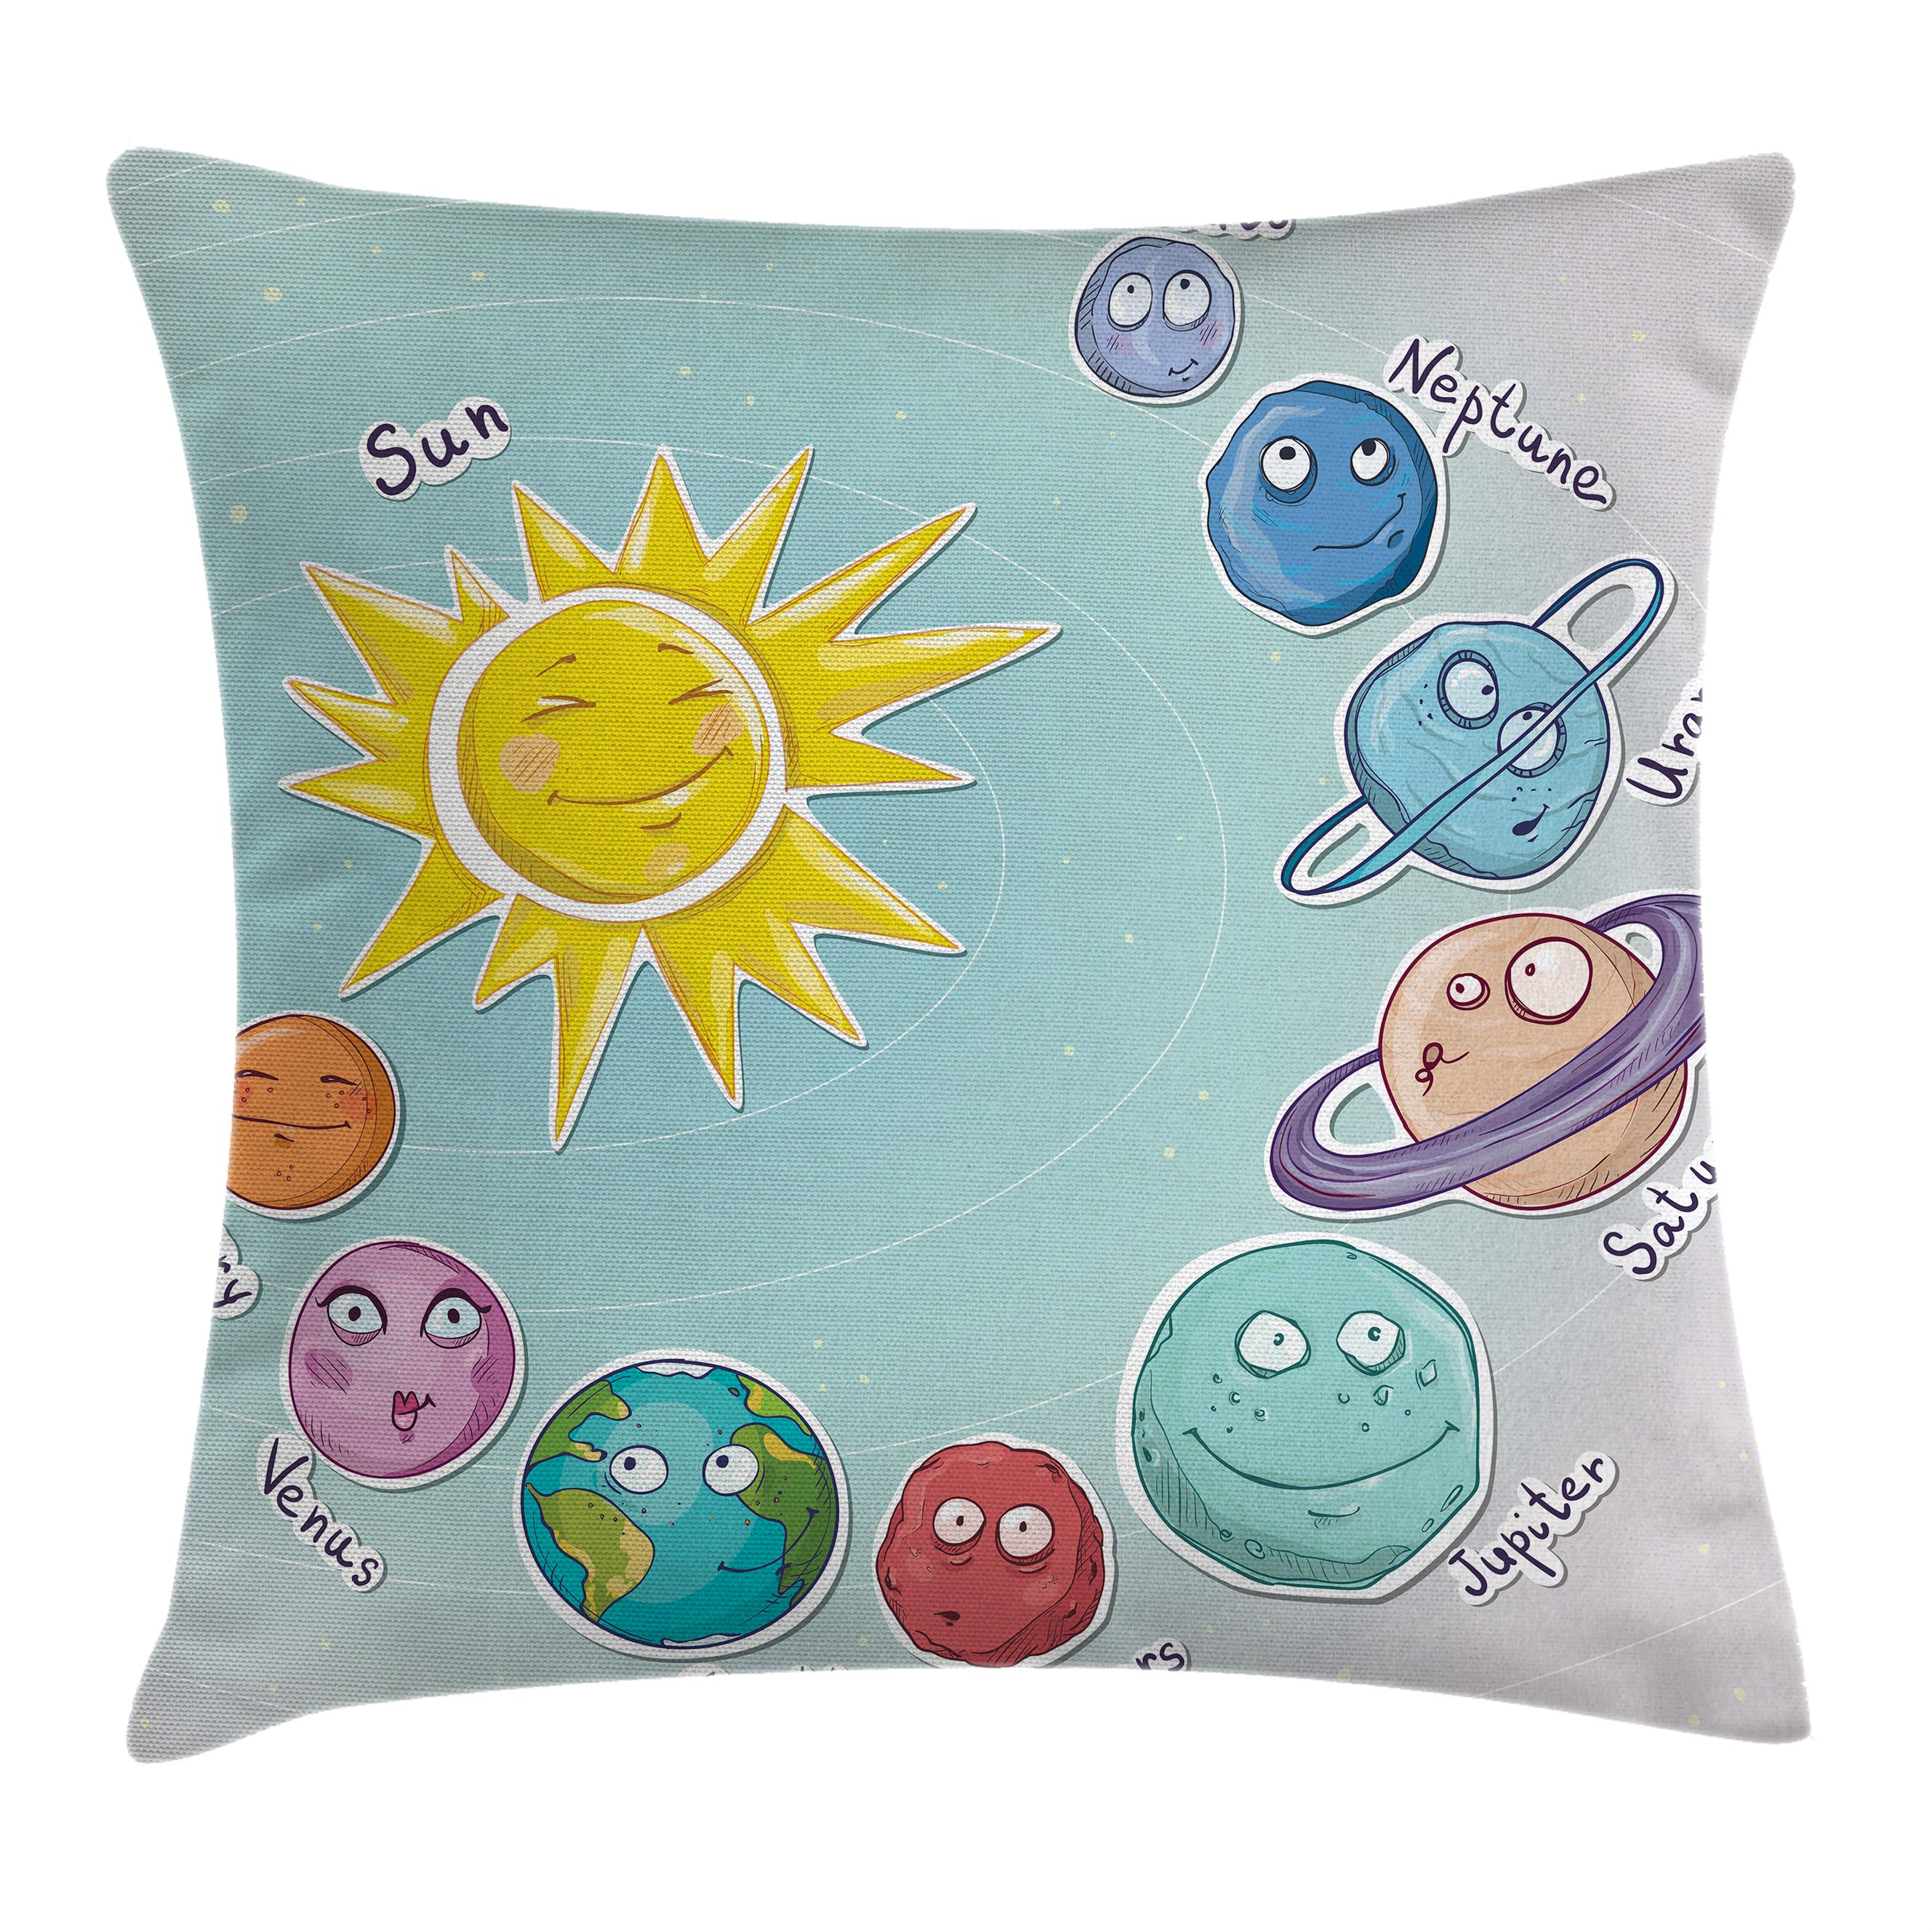 Space Throw Pillow Cushion Cover, Cute Cartoon Sun and Planets of Solar System Fun Celestial Chart Baby Kids Nursery Theme, Decorative Square Accent Pillow Case, 16 X 16 Inches, Multi, by Ambesonne